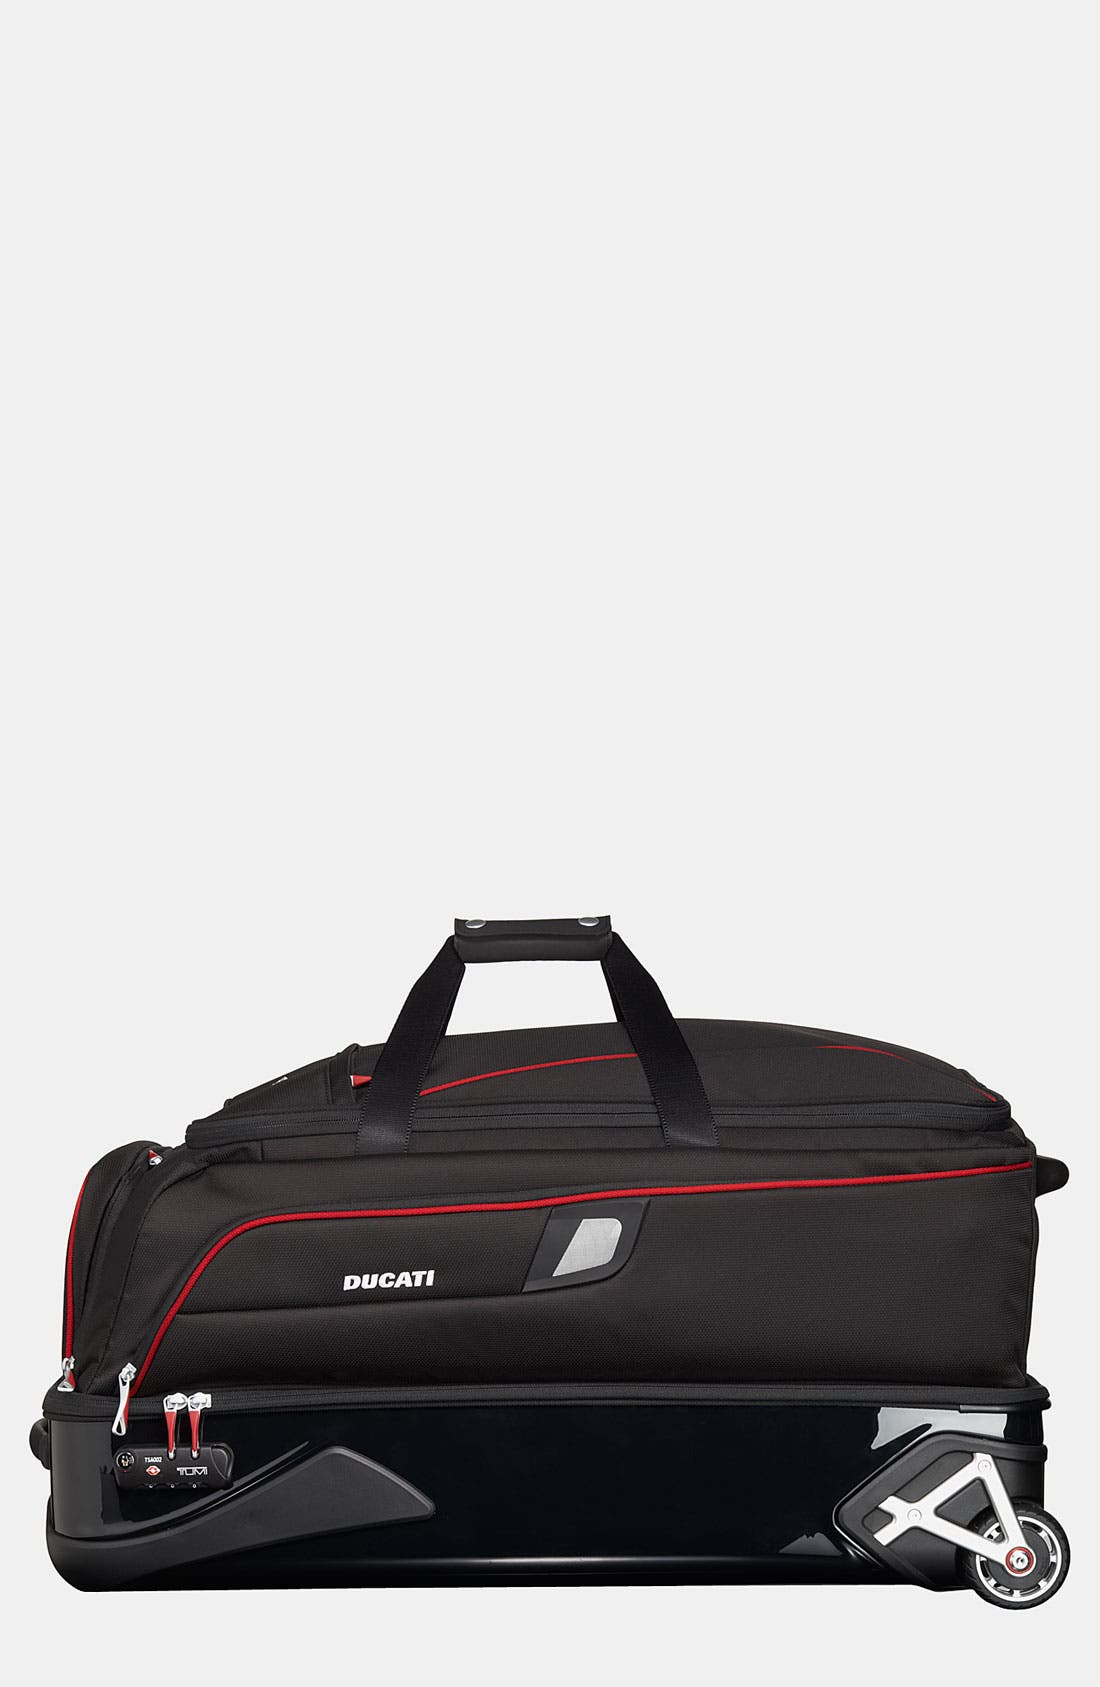 Alternate Image 1 Selected - Tumi 'Ducati - Due Porte' Collapsible Wheeled Duffel Bag